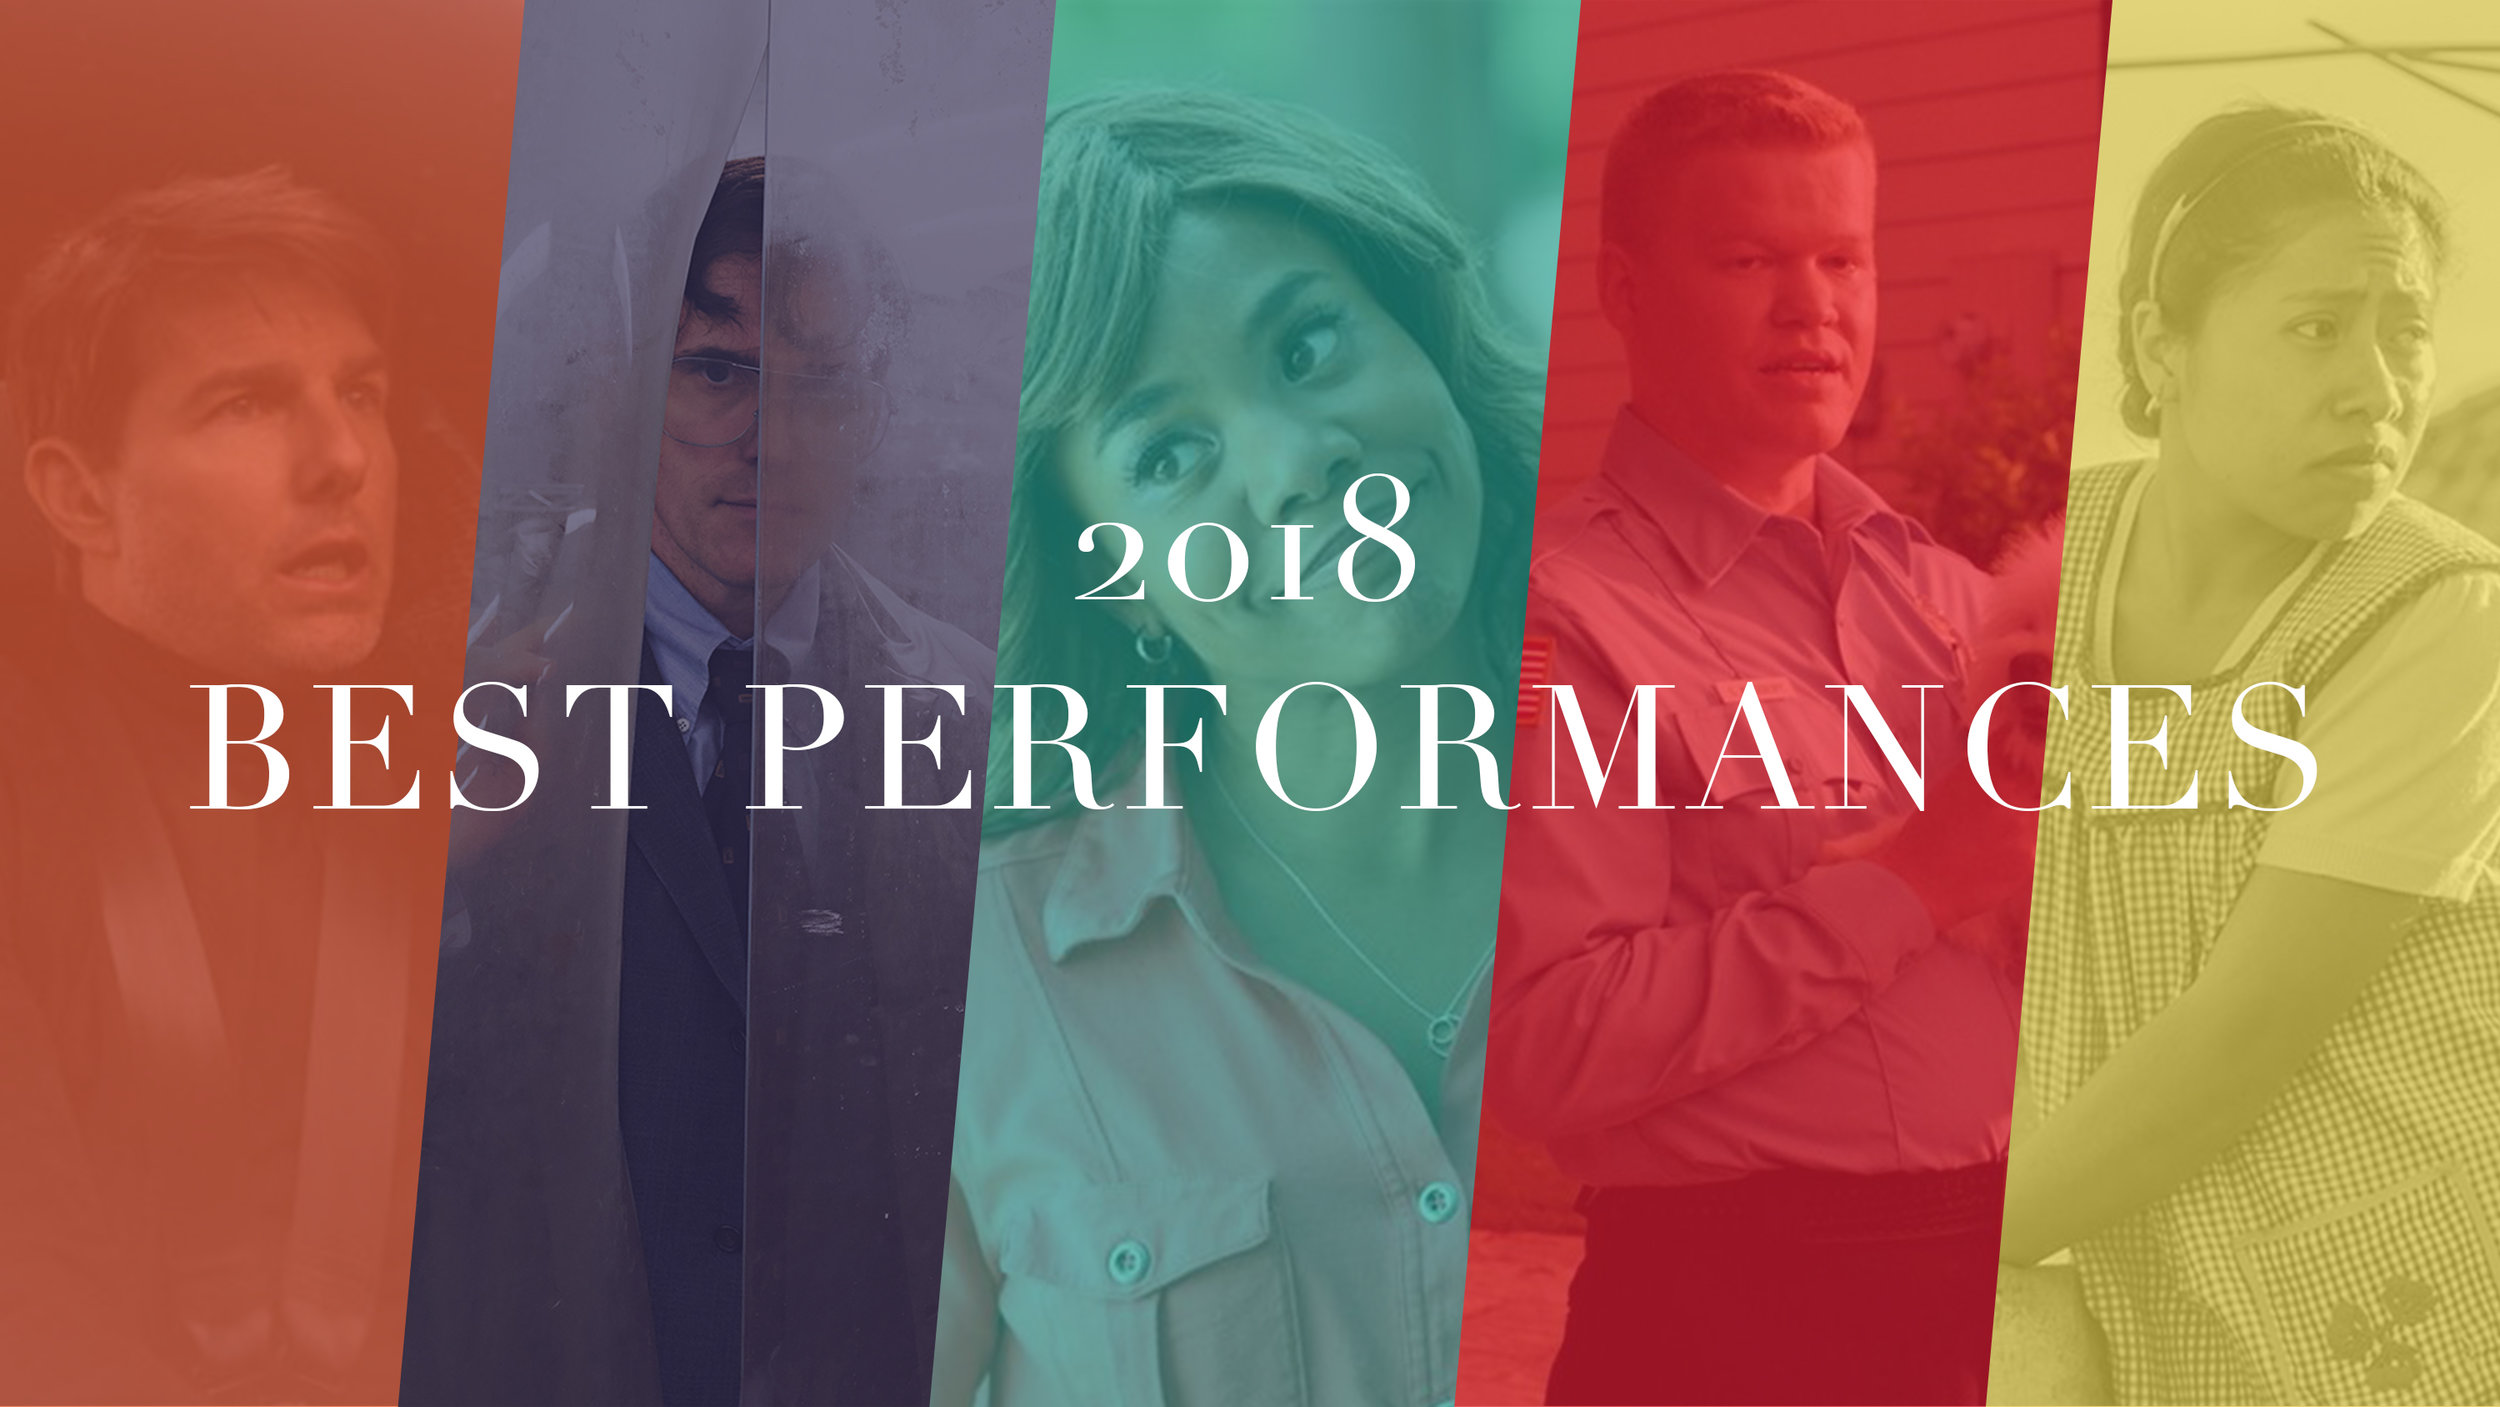 BEST PERFORMANCES COVER IMAGE.jpg